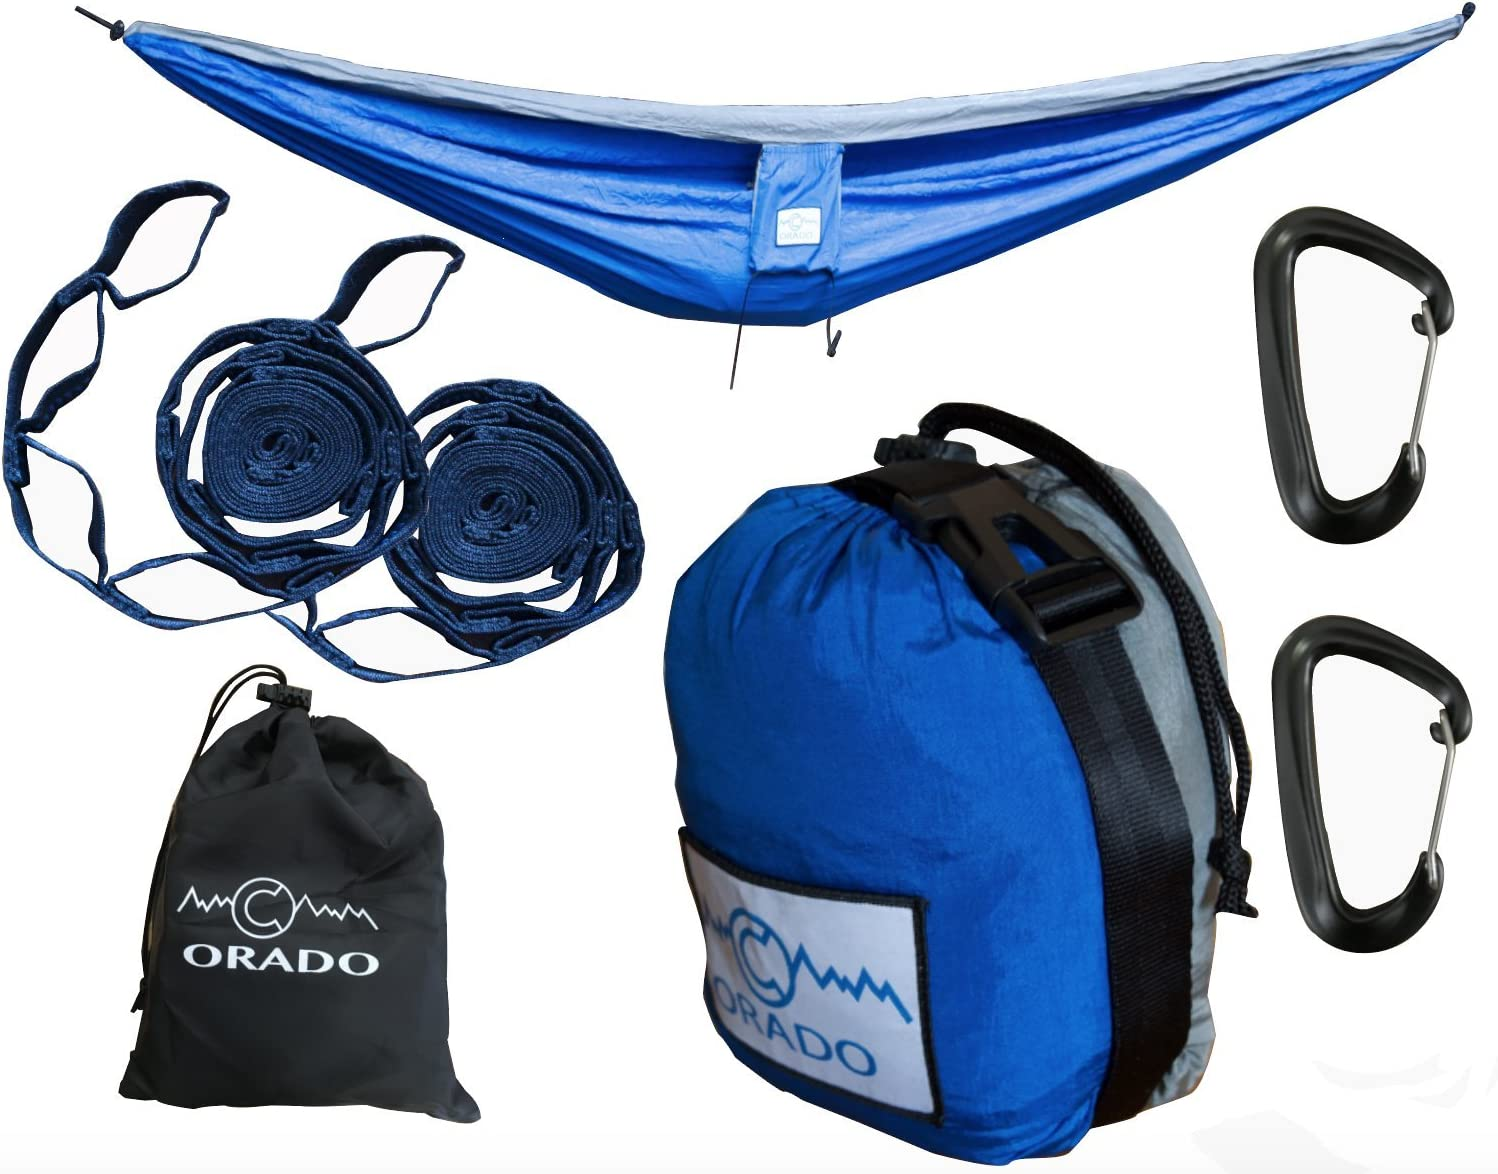 Best Double Camping Hammock, Complete Hammock System by Orado Outdoor Products, Includes Easy to Use Tree Straps, Aluminum Carabiners and Attached Bag – Portable, Ultralight